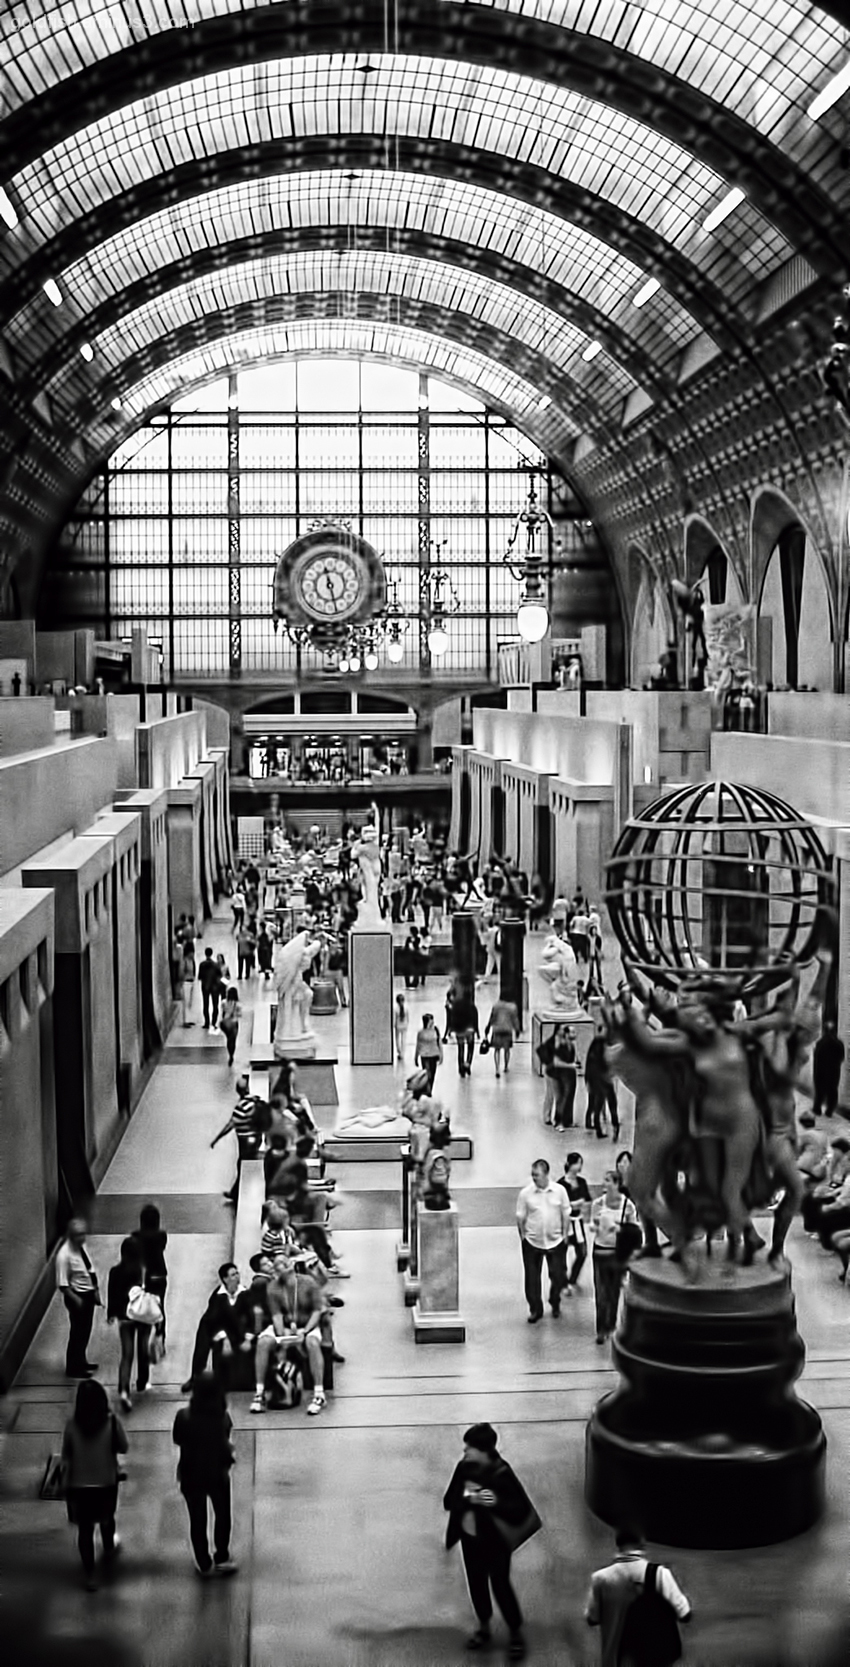 Musee d'Orsay 4/4